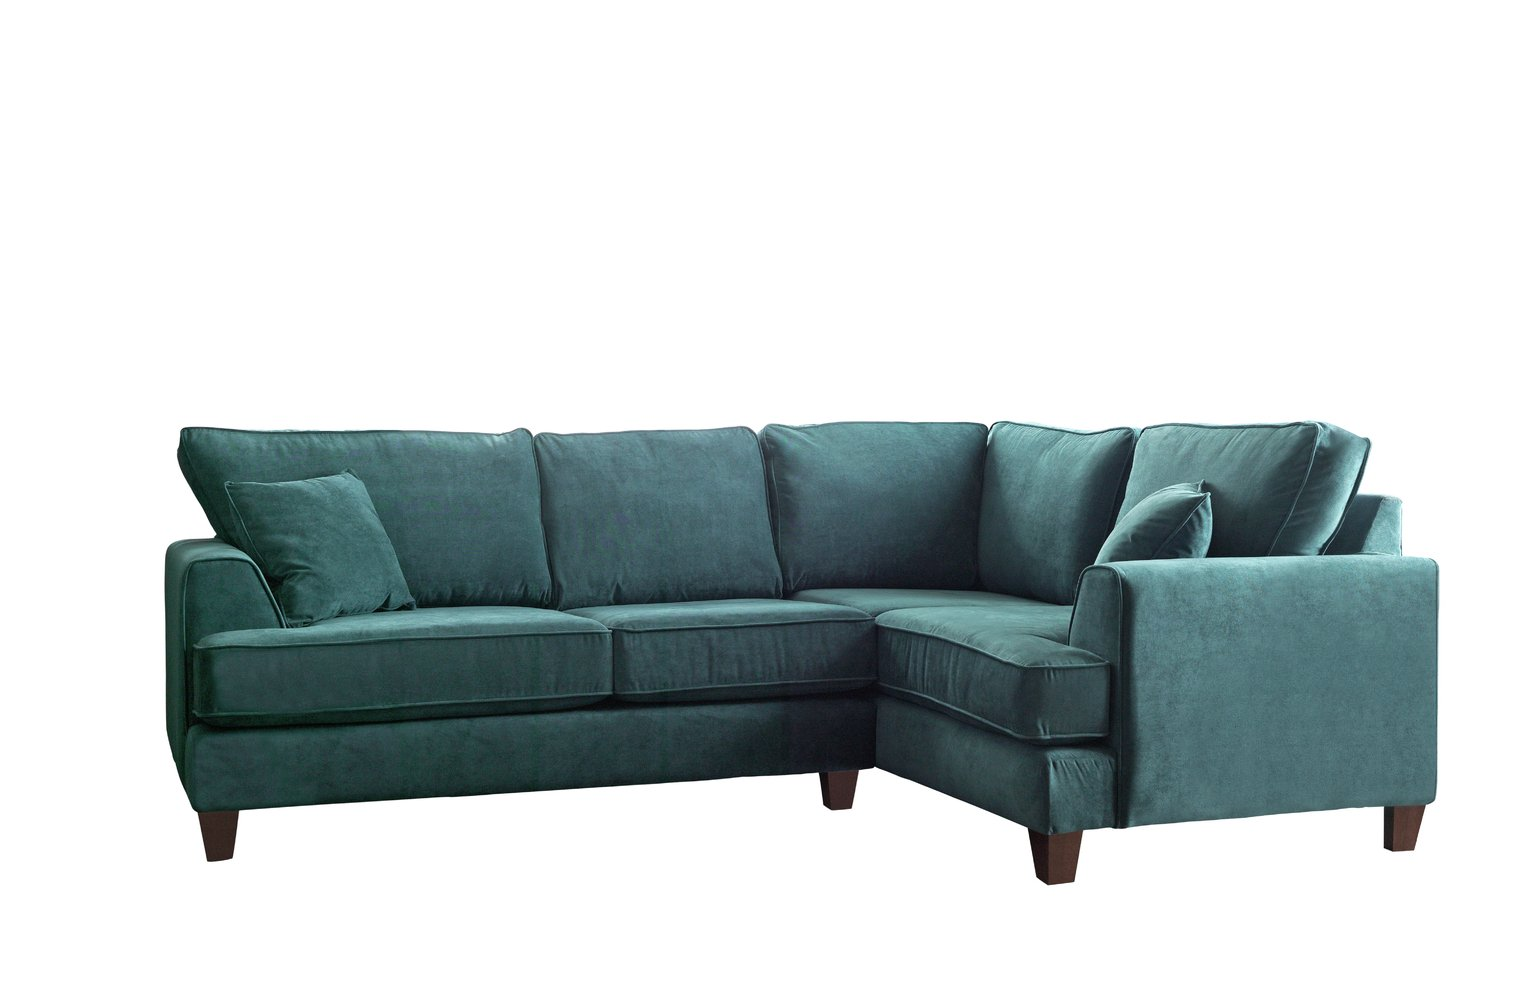 Argos Home Hampstead Right Corner Fabric Sofa - Ocean Blue